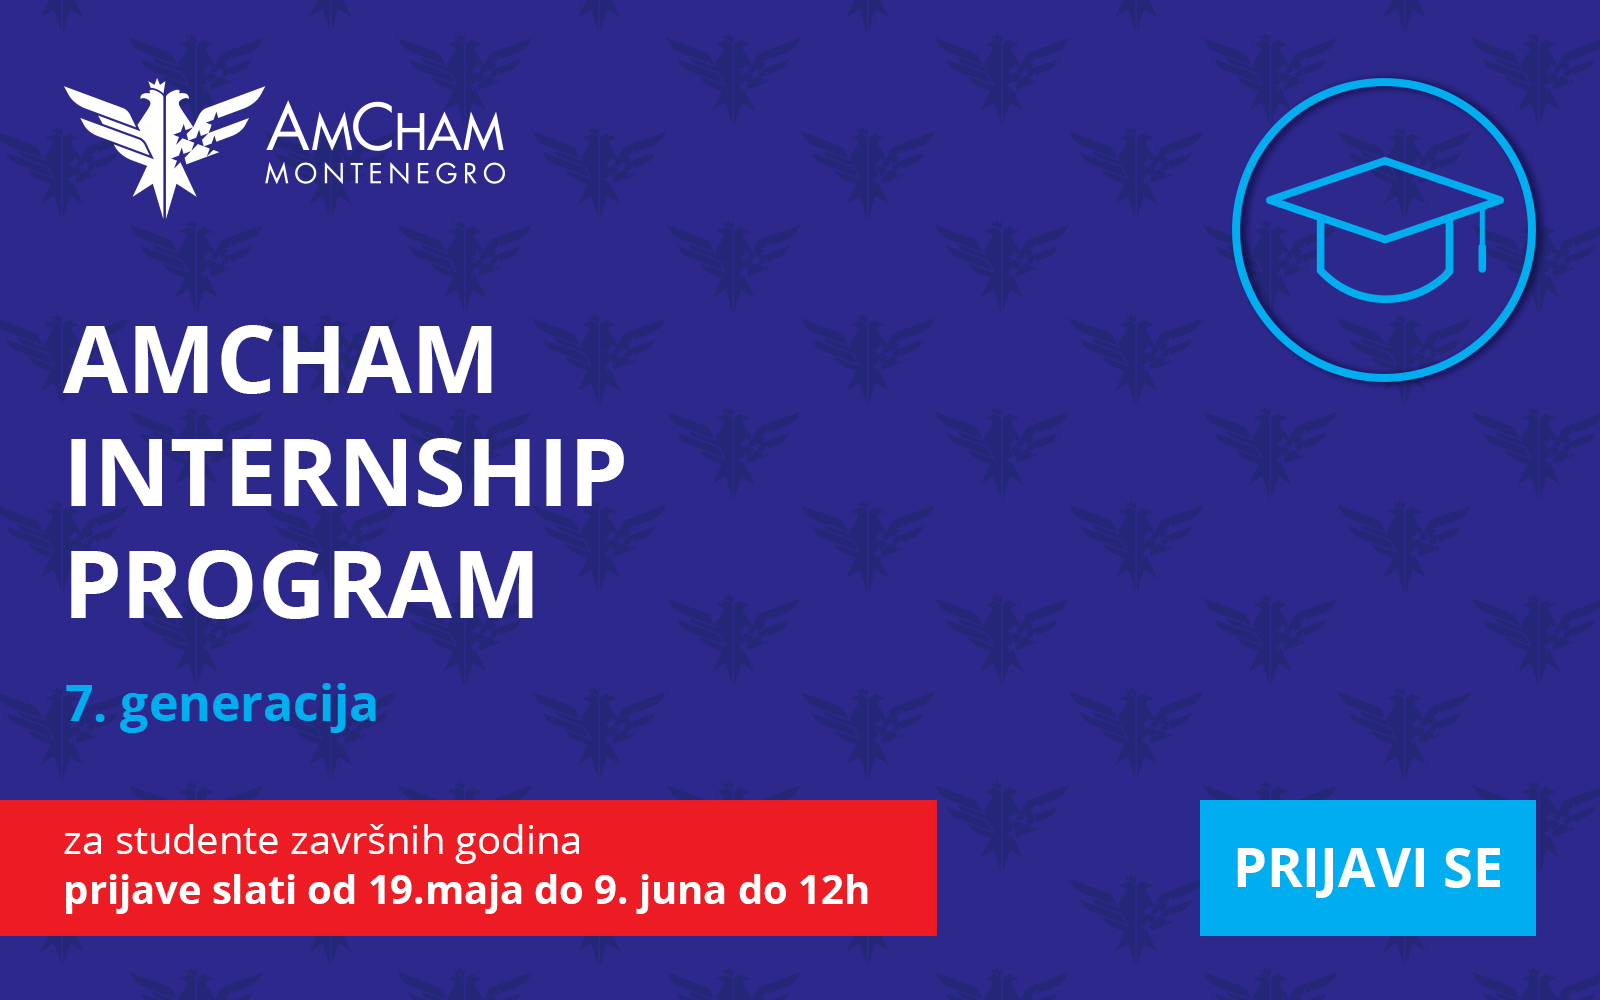 2017 AmCham Internship Program application terms and documentation required